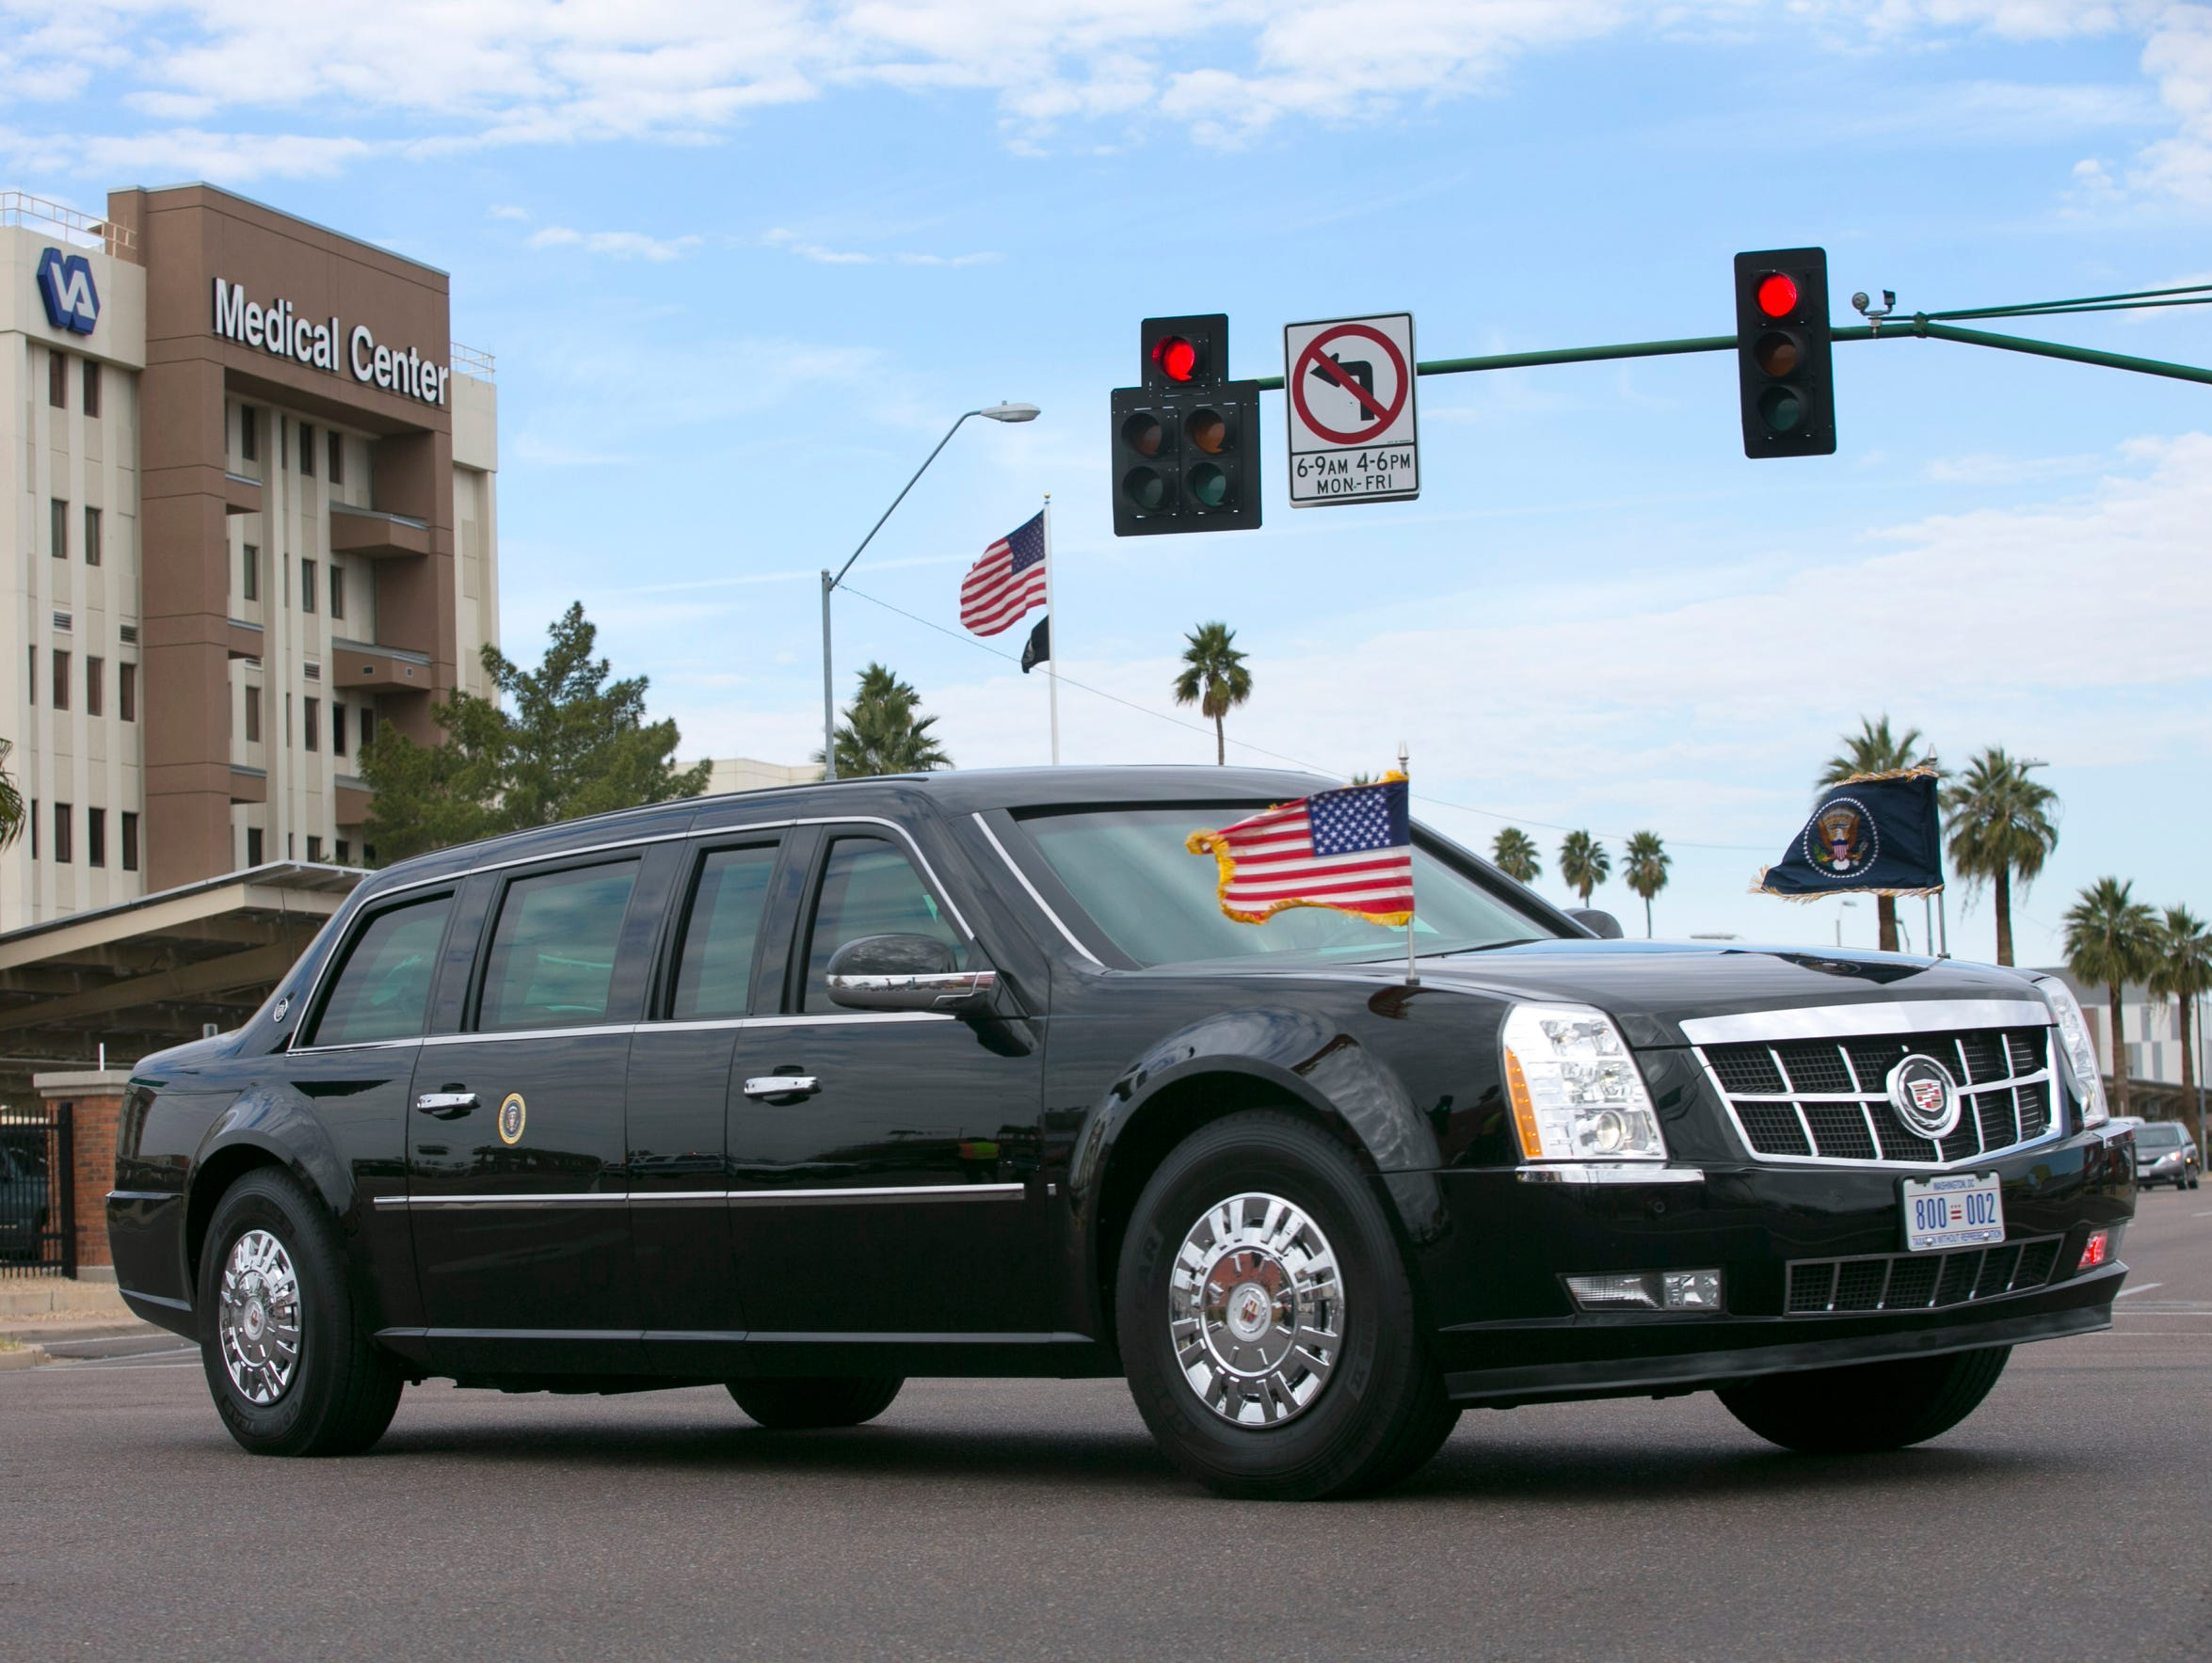 The Presidential limo containing President Barack Obama